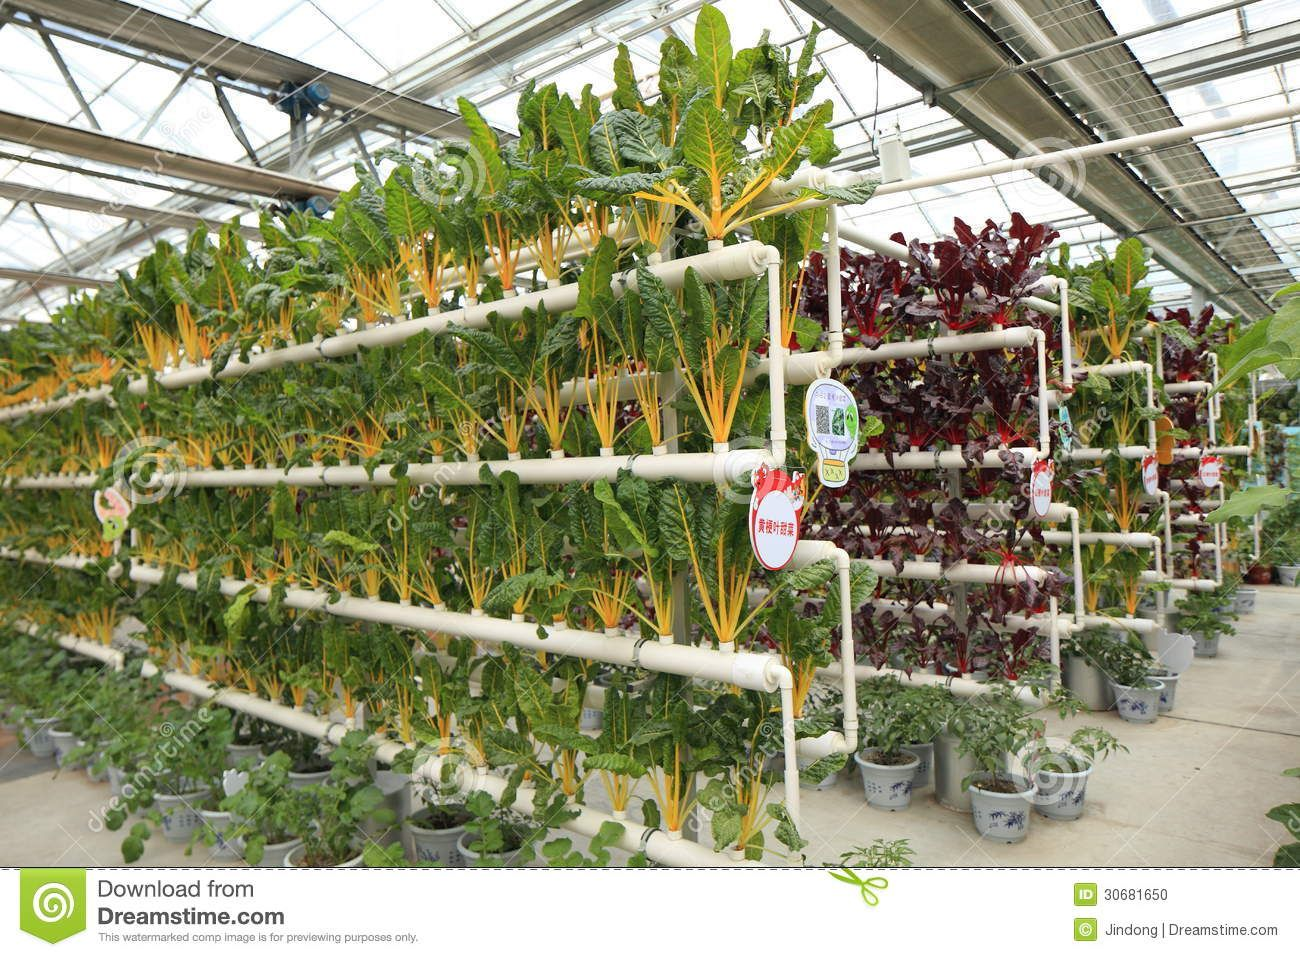 Elegant Greenhouse Farm Plants And Animals   Recherche Google